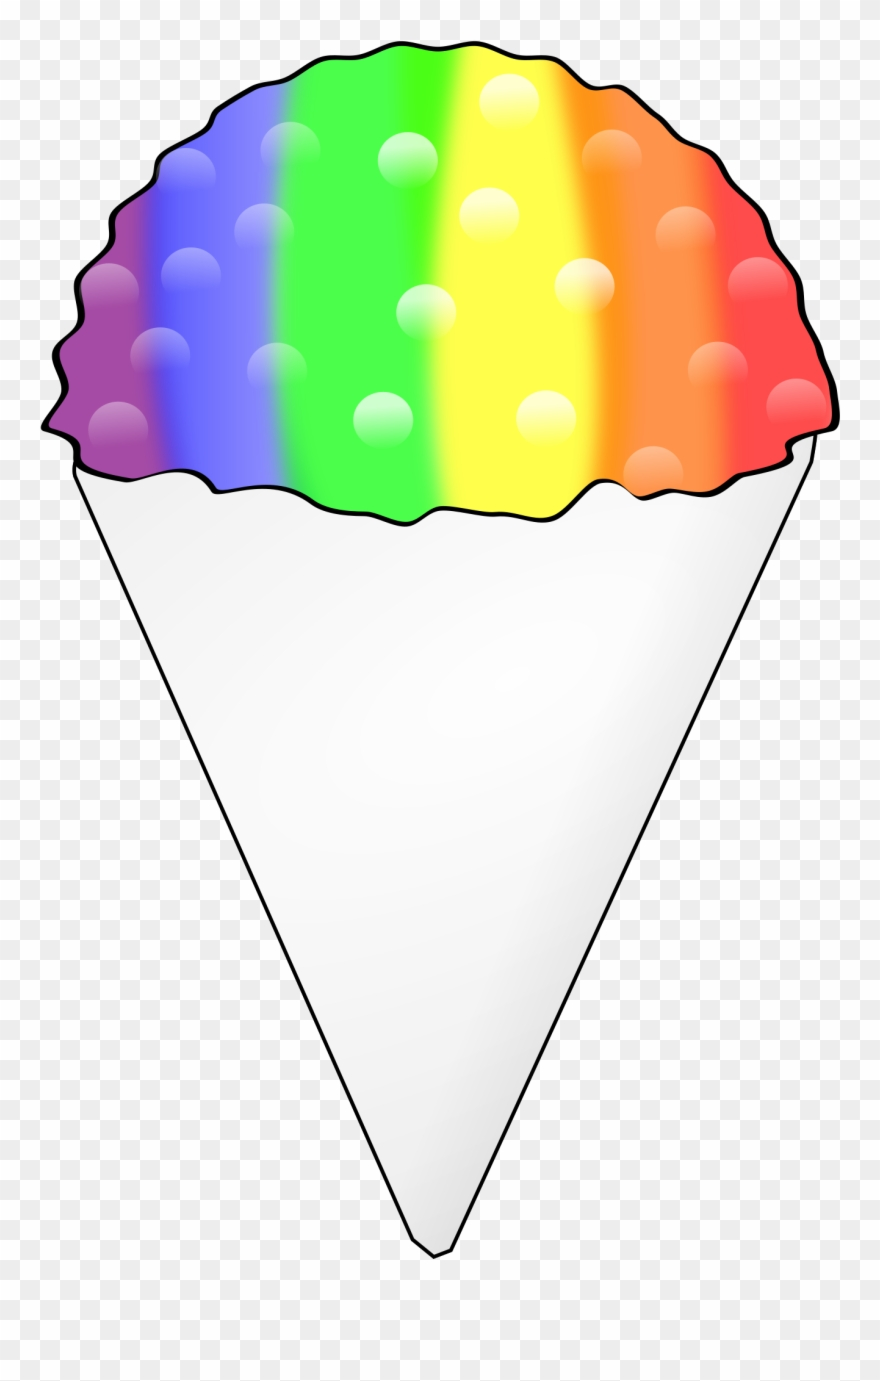 hight resolution of snow cone clipart 3 clip art ice cream png download